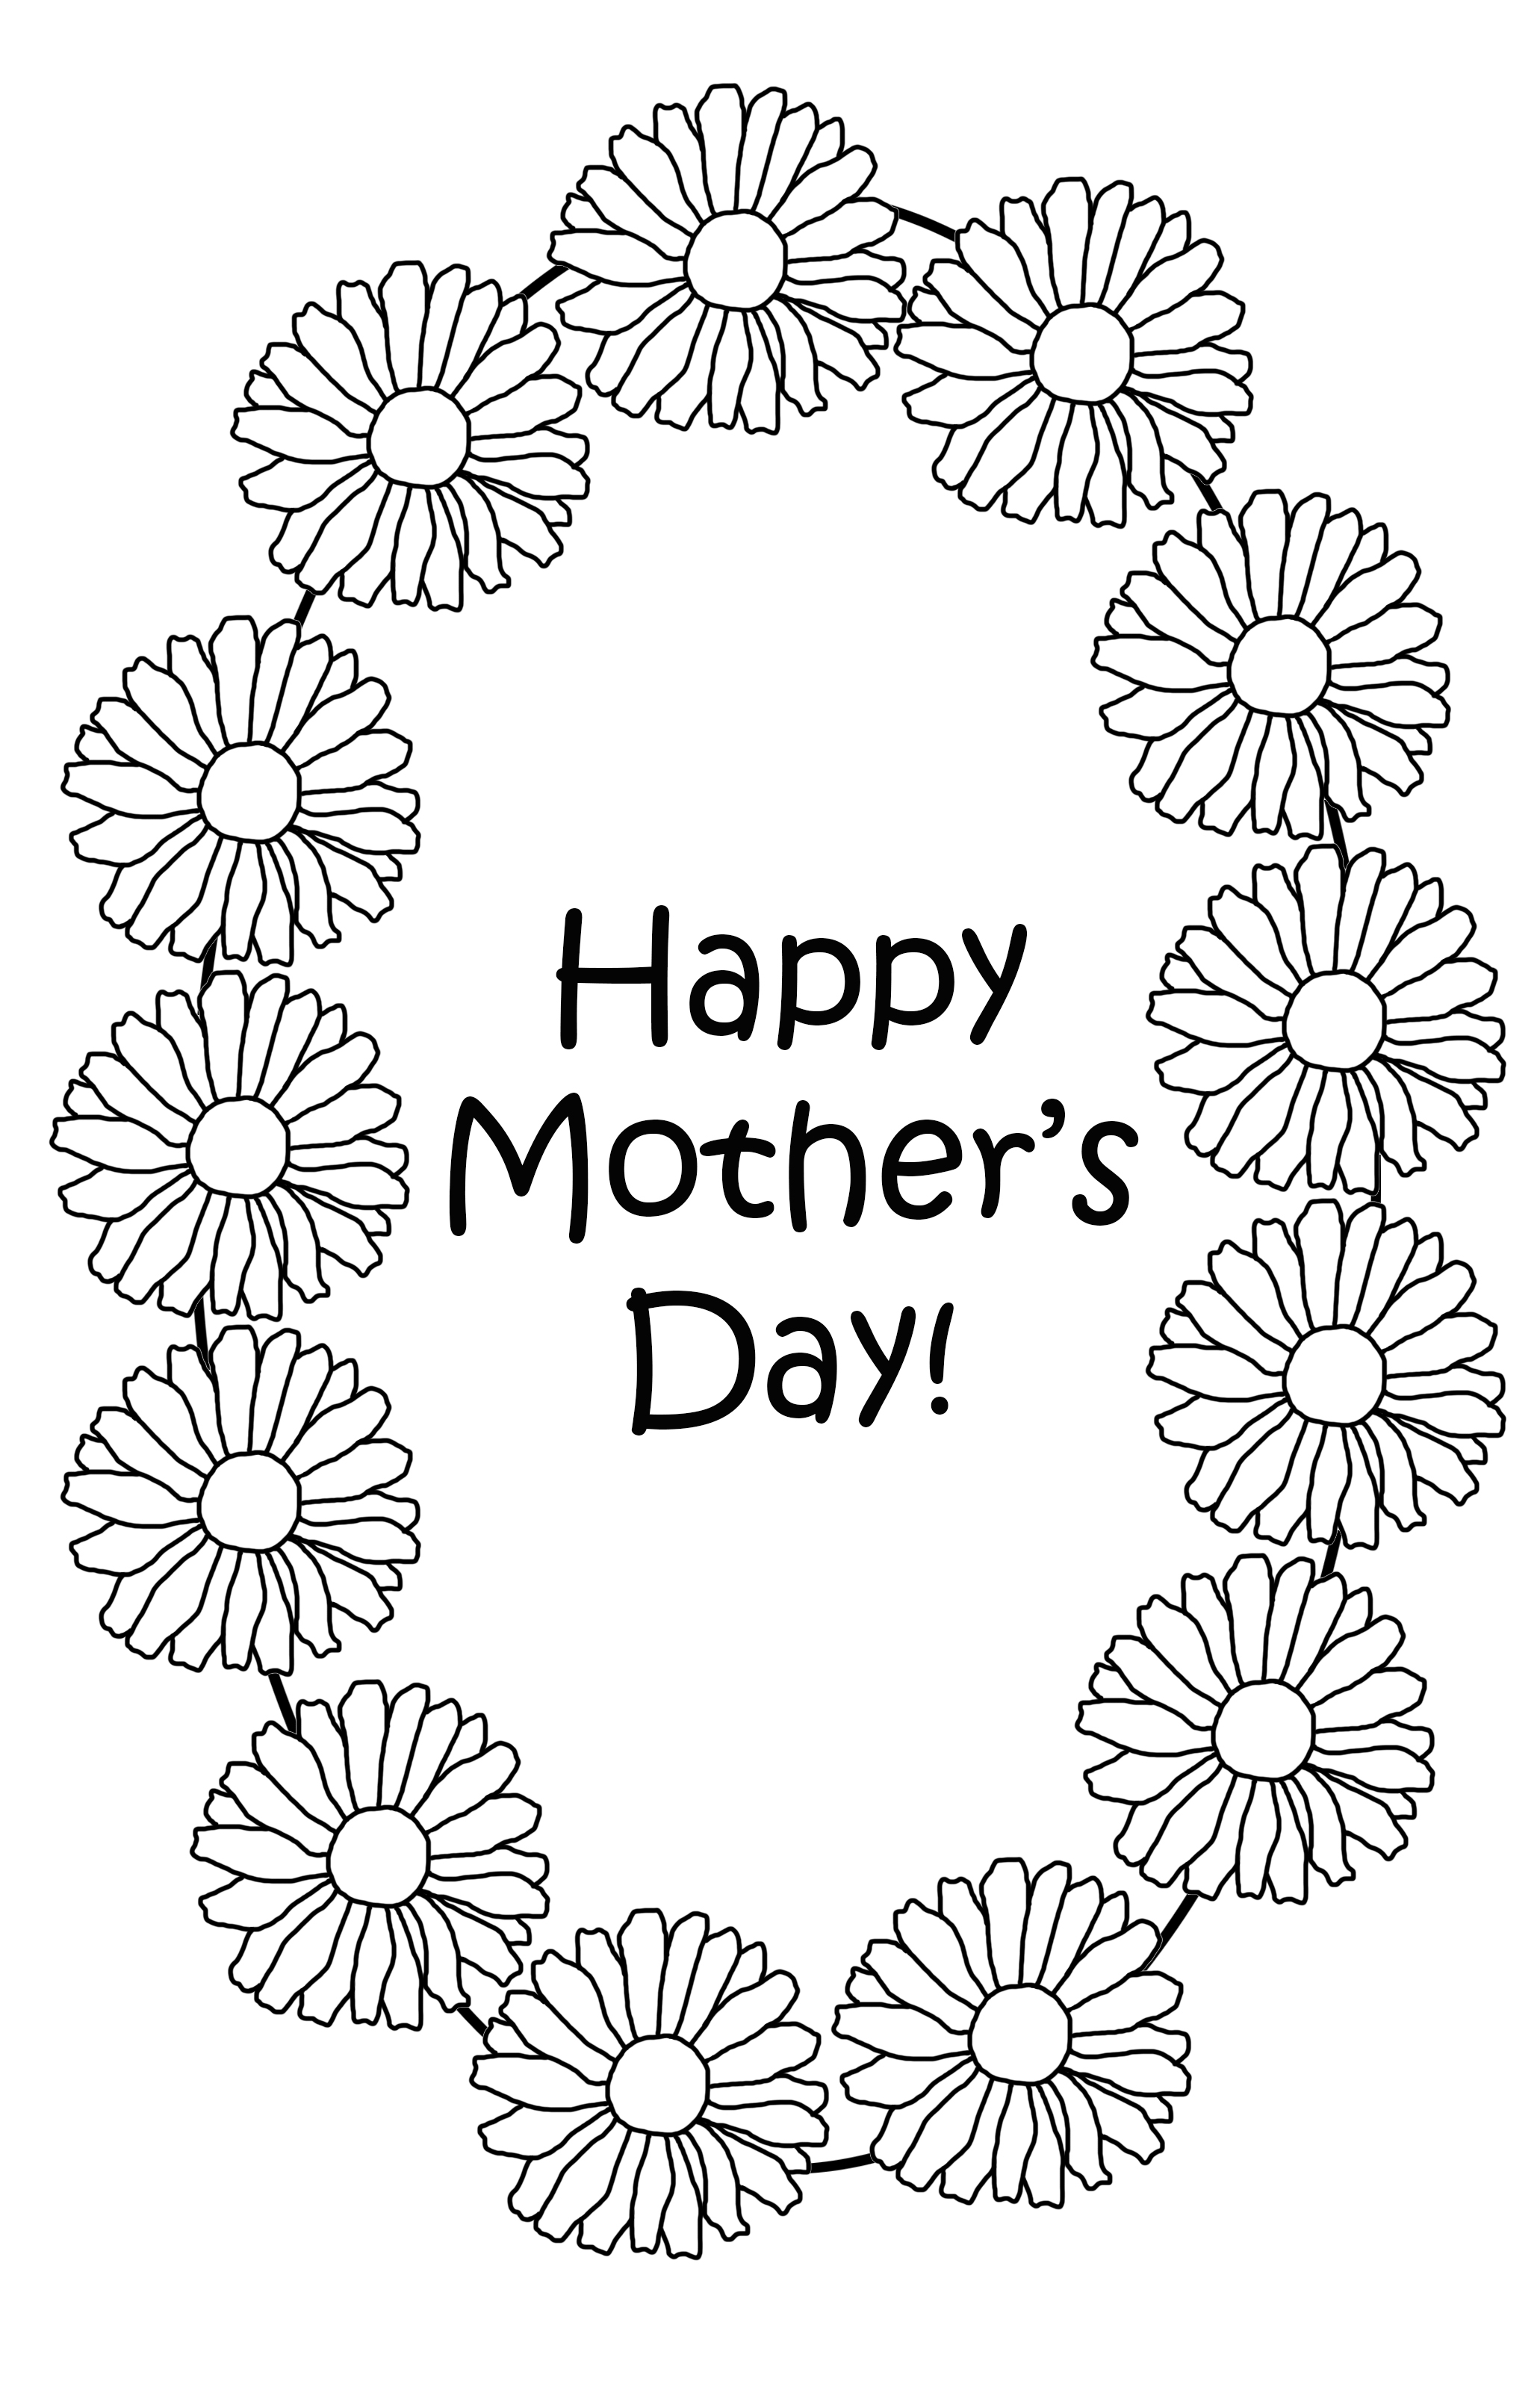 Mother's Day coloring with daisies